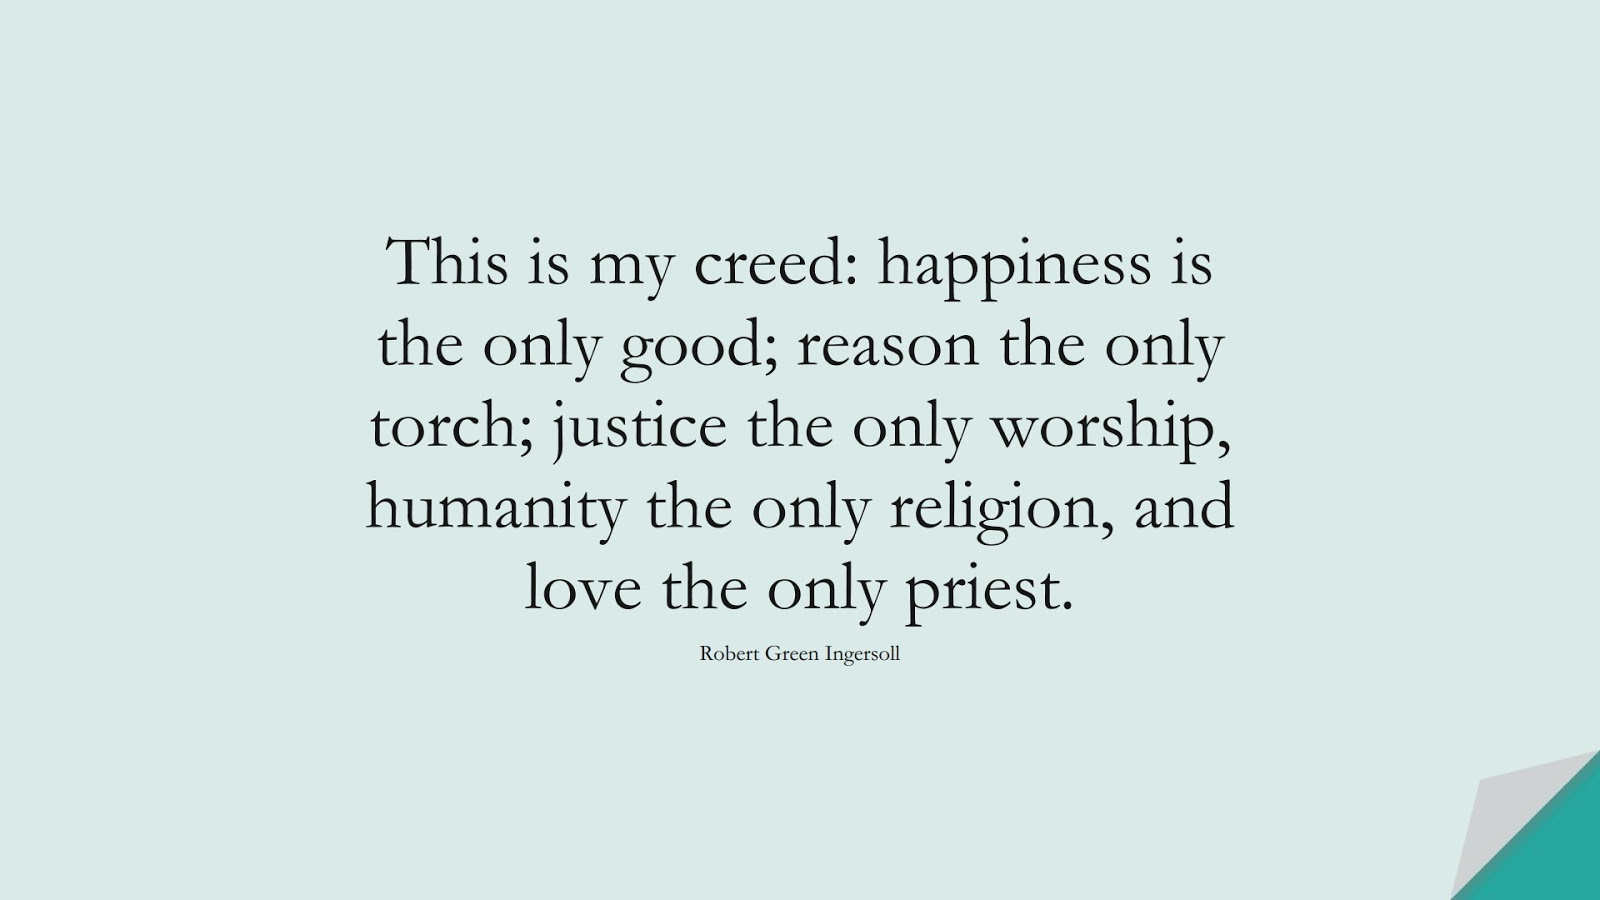 This is my creed: happiness is the only good; reason the only torch; justice the only worship, humanity the only religion, and love the only priest. (Robert Green Ingersoll);  #HumanityQuotes